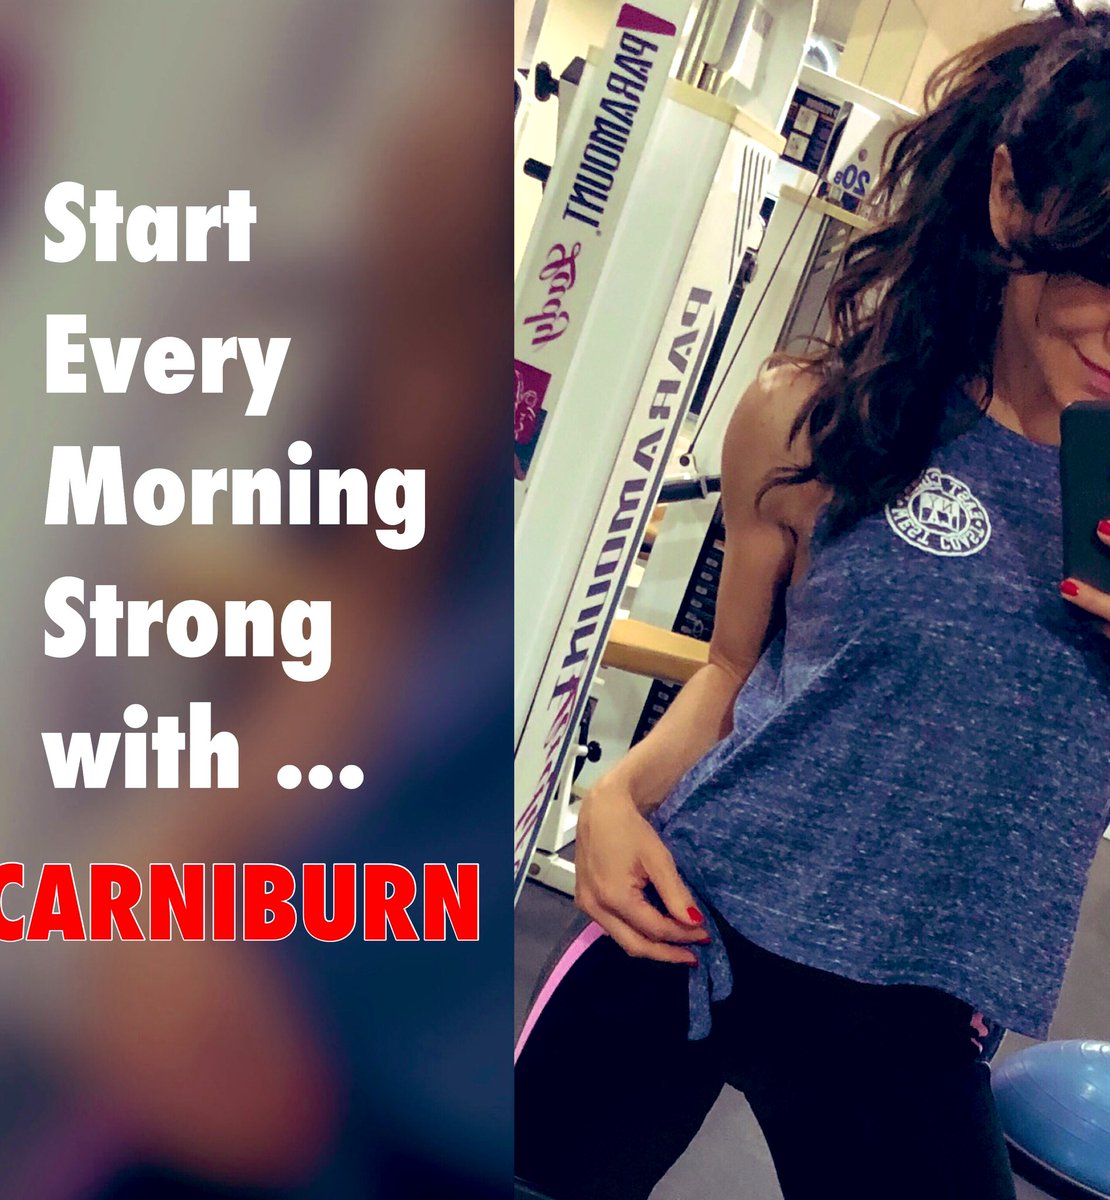 Let's GO! Cardio time with CARNIBURN @amazon 😅